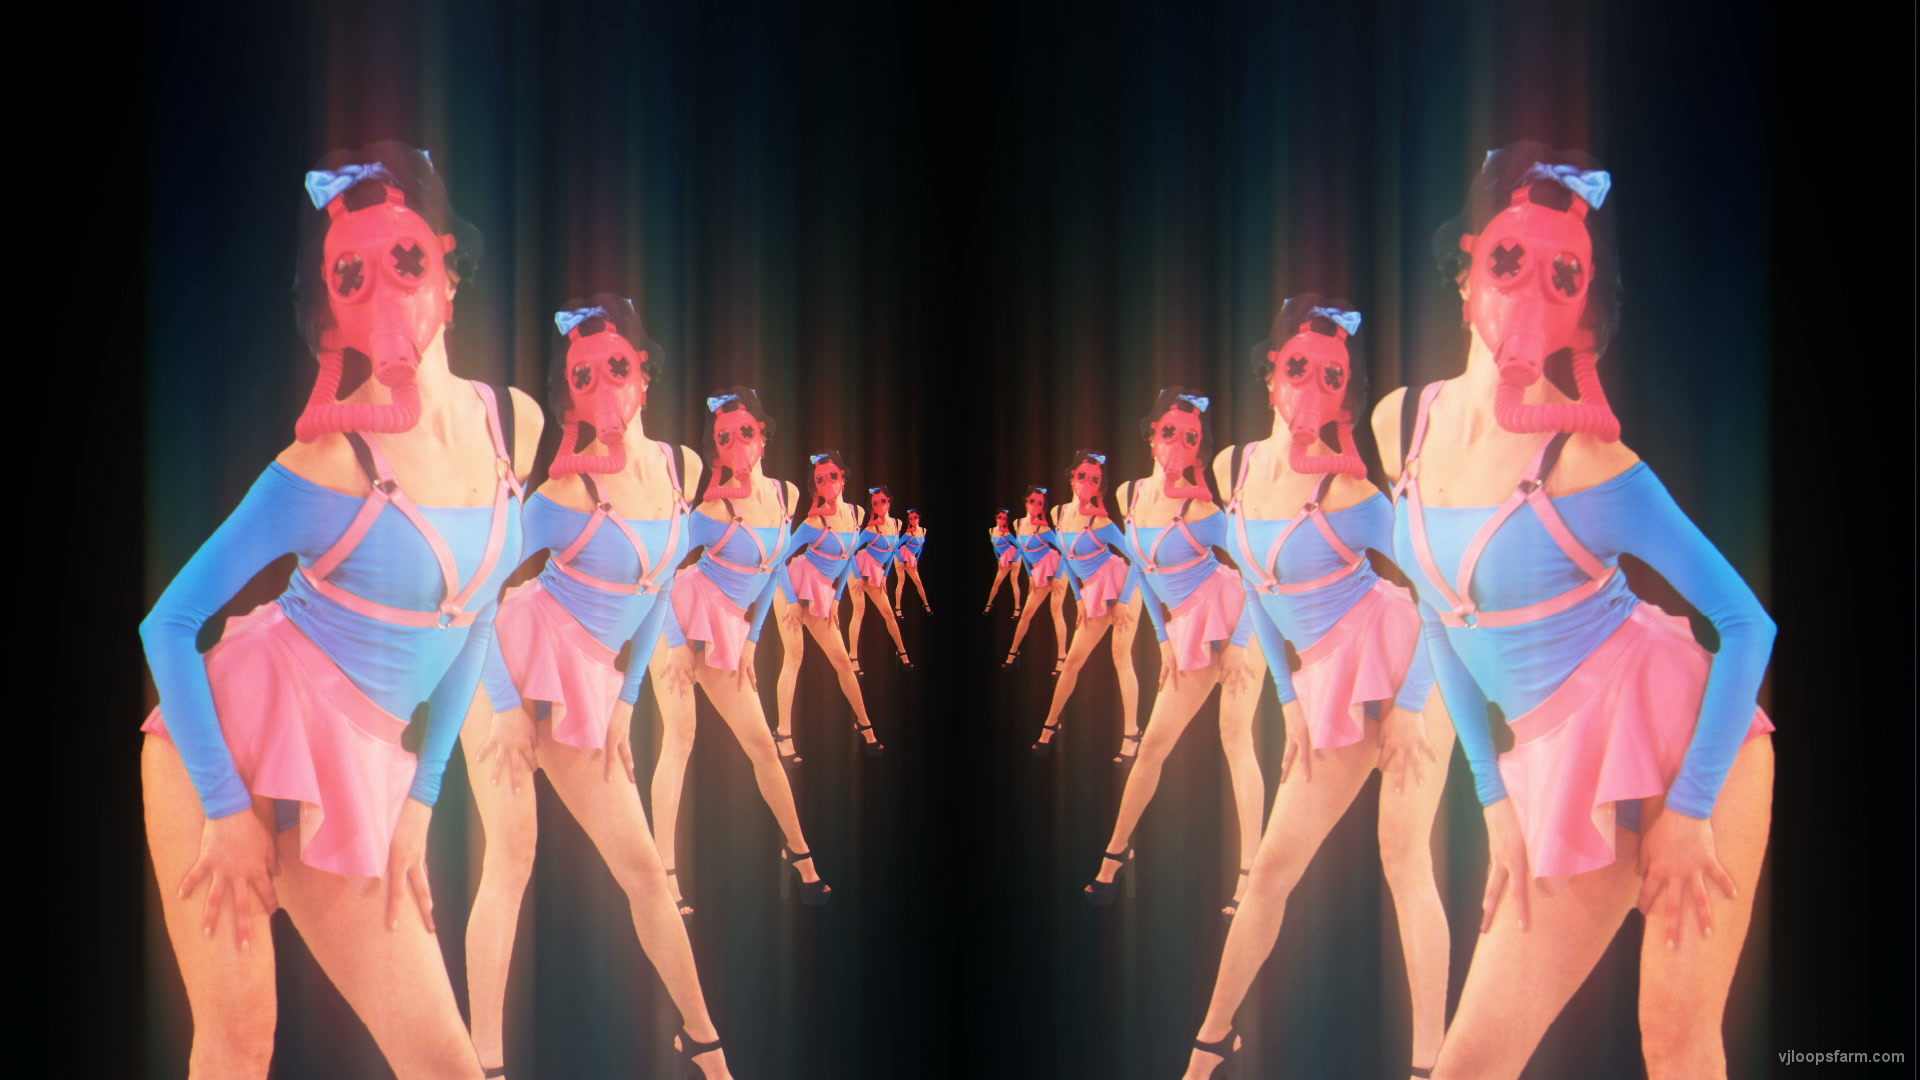 vj video background Dancing-glamour-chornobyl-girls-dancing-go-go-video-art-vj-loop-pixel-sorting_003